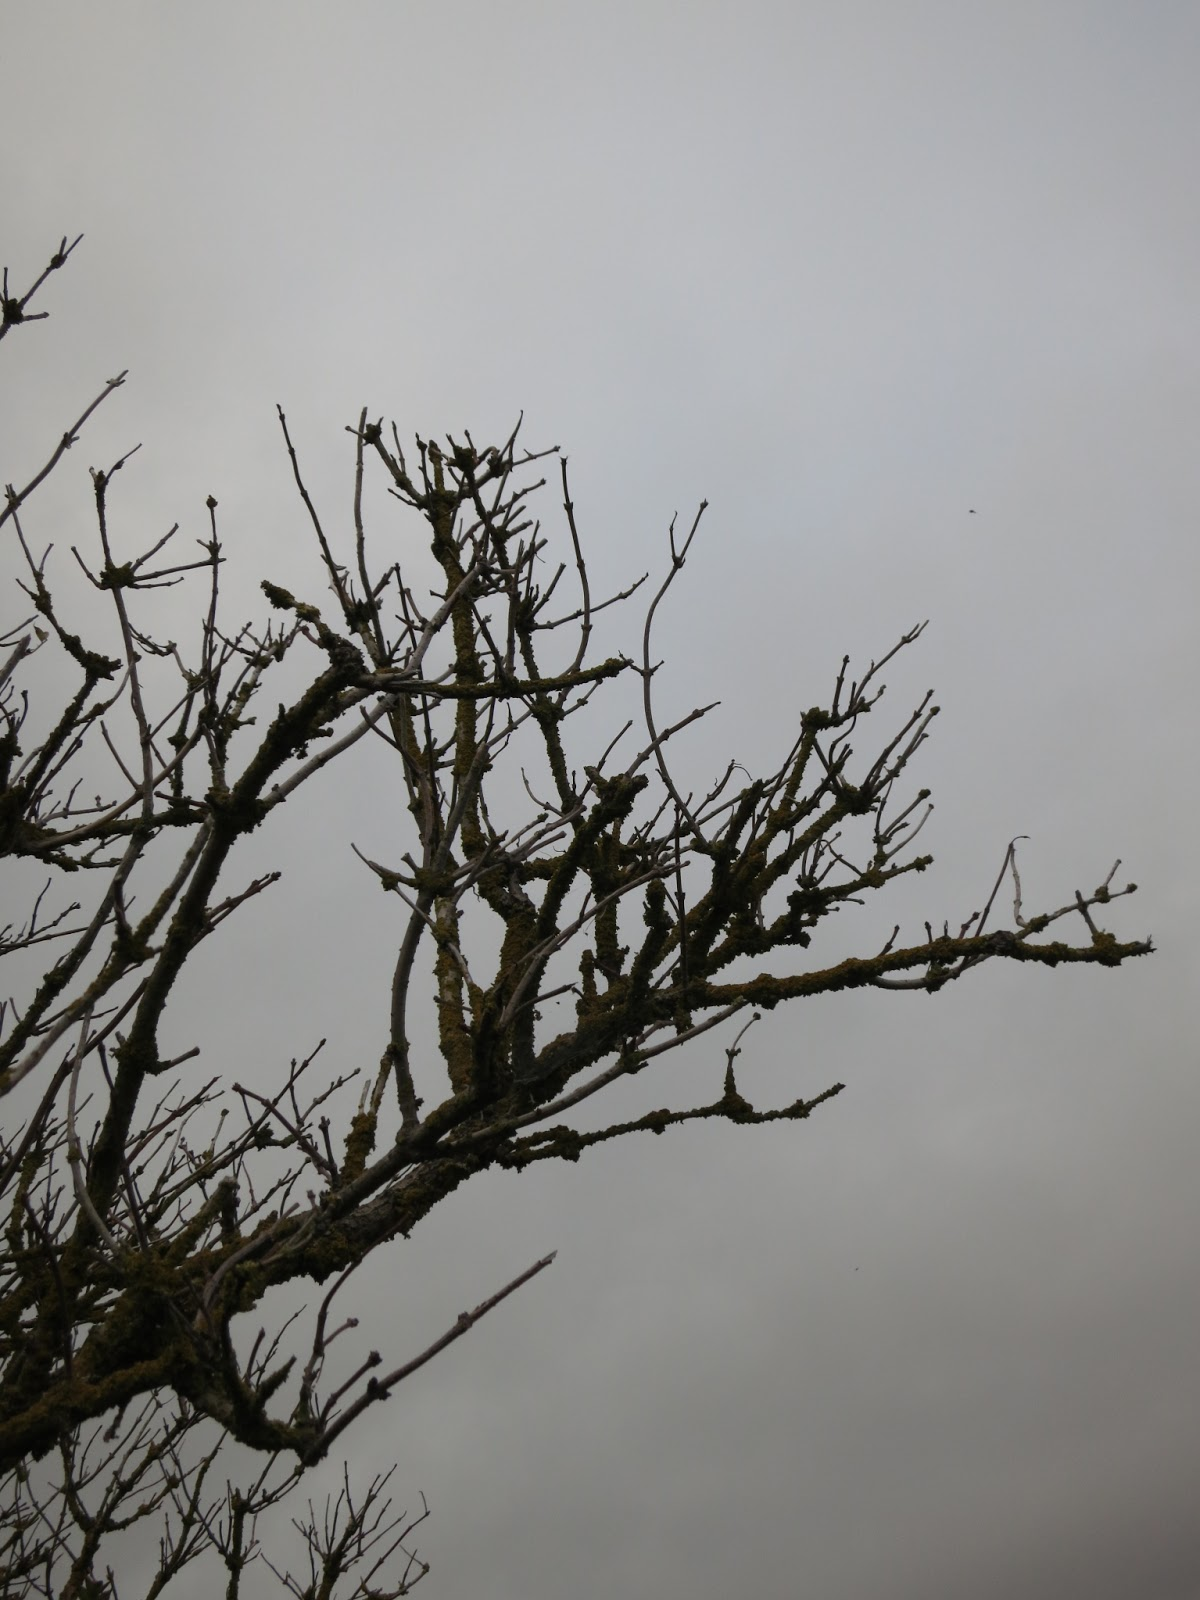 Bare branches of elderberry tree made lumpy by lichen silhouetted against a grey sky.